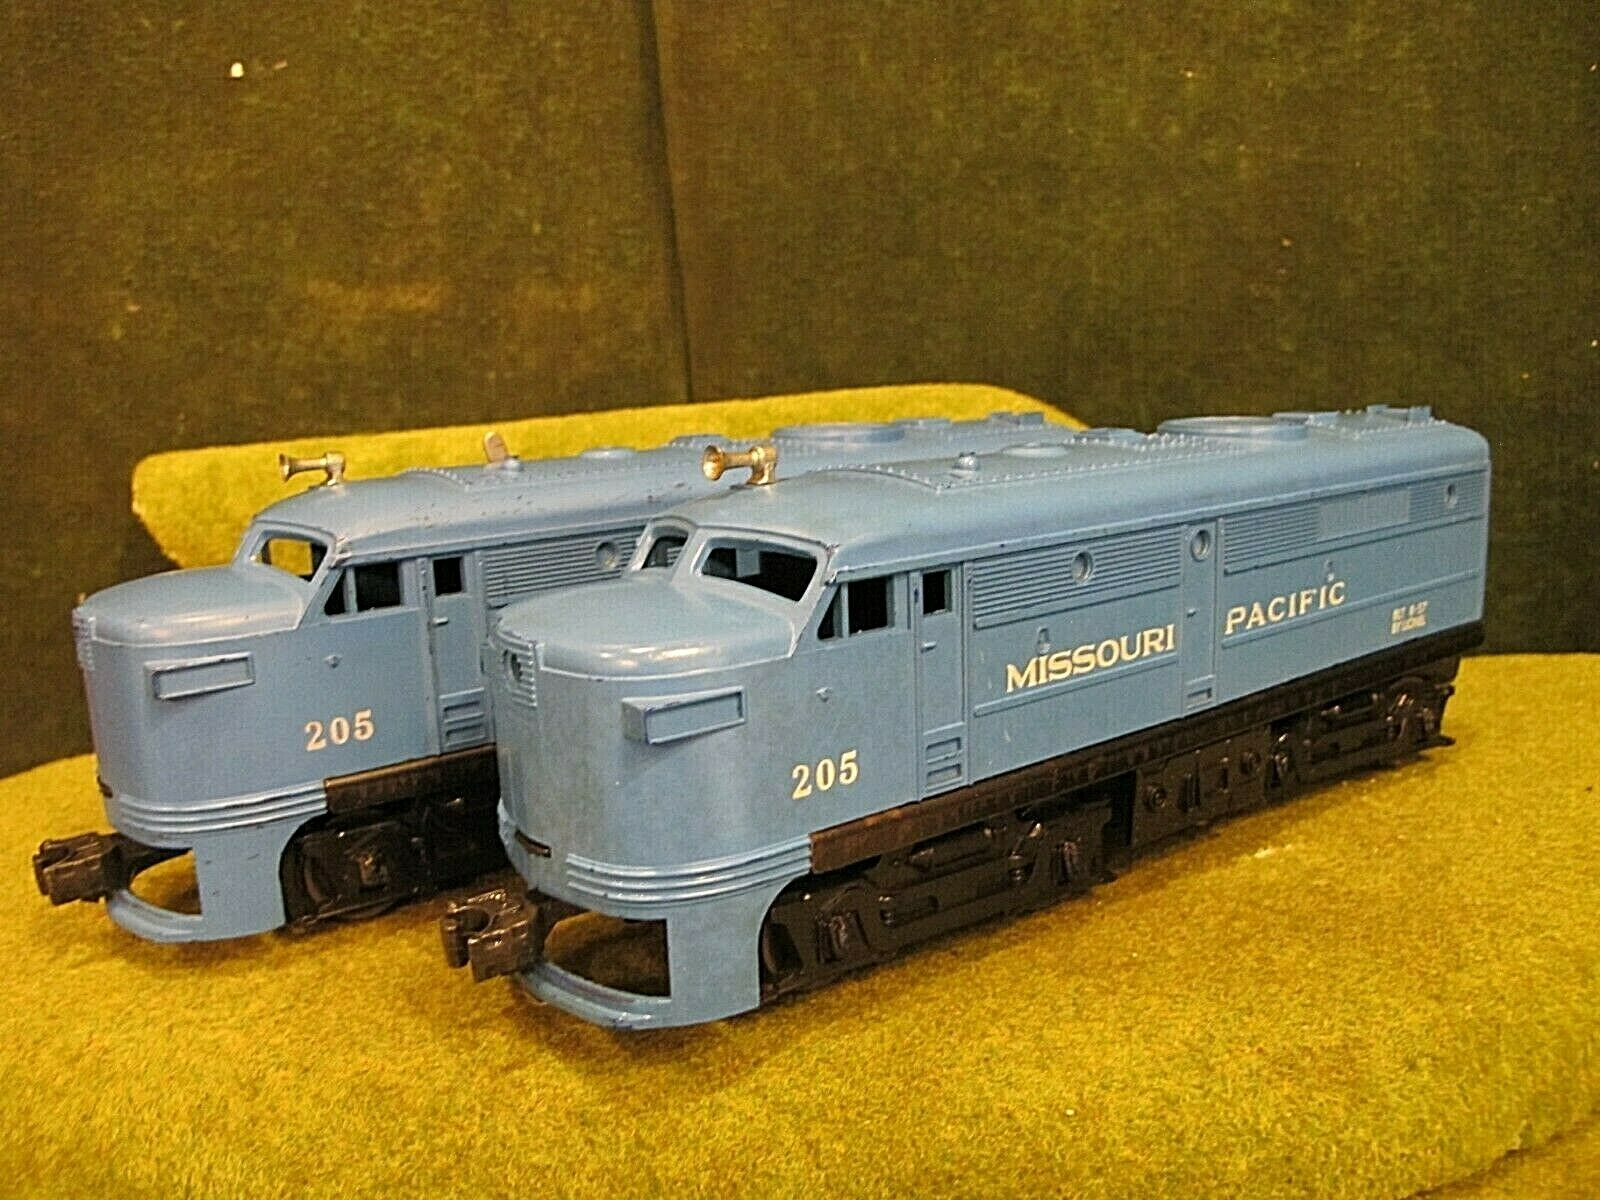 LIONEL 205 MISSOURI PACIFIC ALCO AA Alcos tested and Laufen